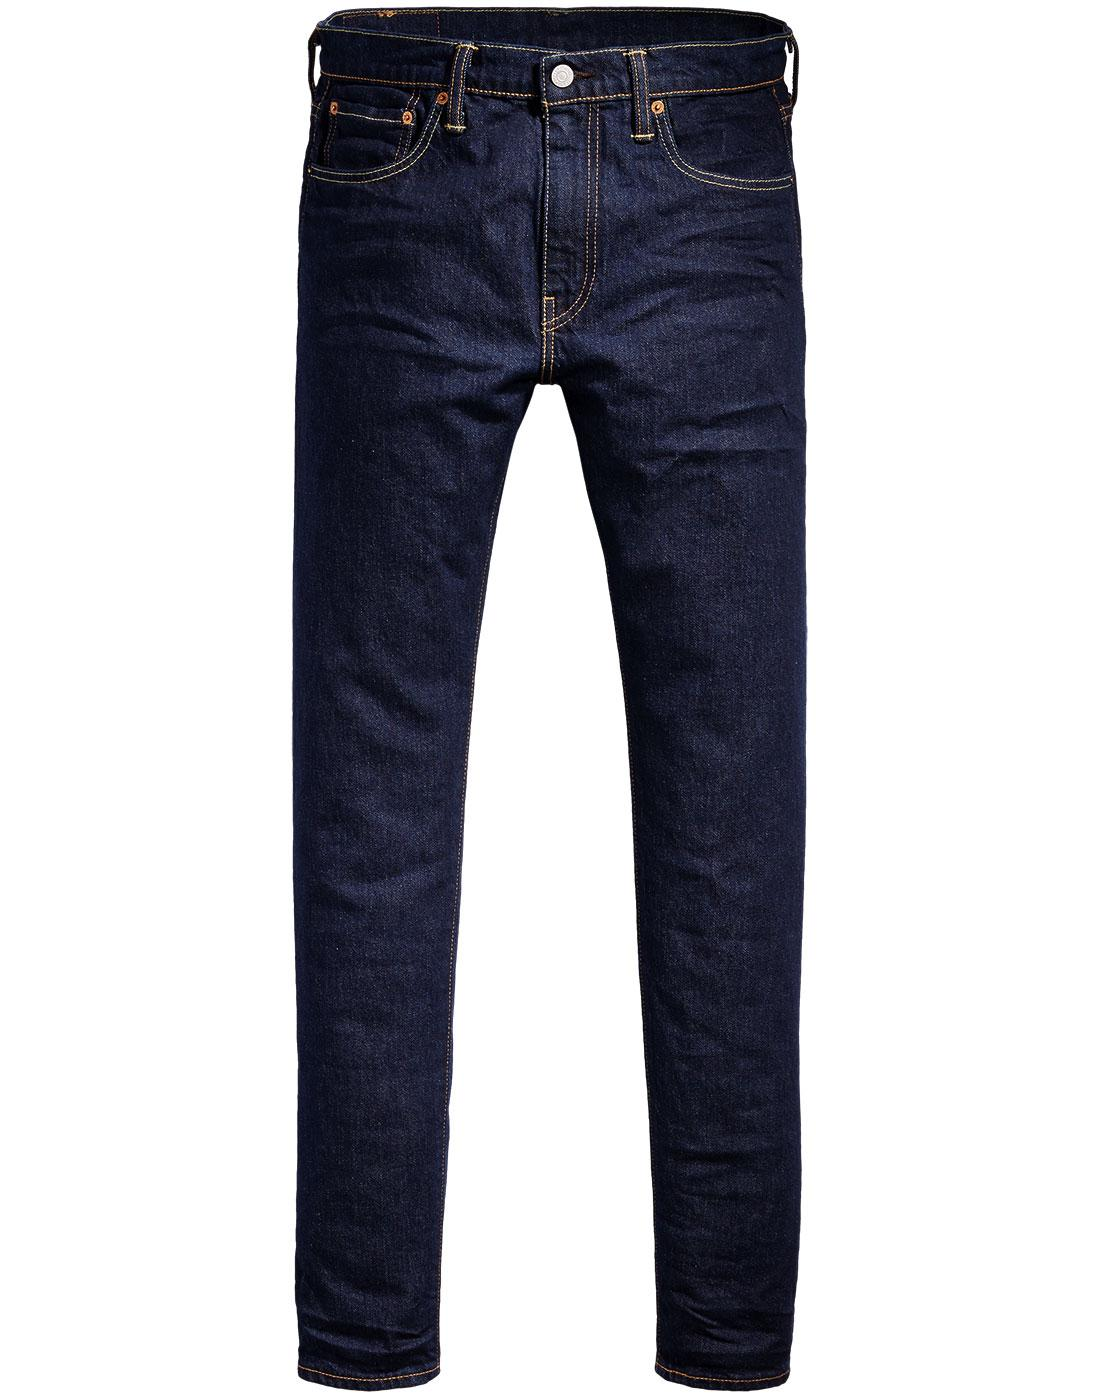 LEVI'S 512 Slim Taper Fit Retro Jeans CHAIN RINSE